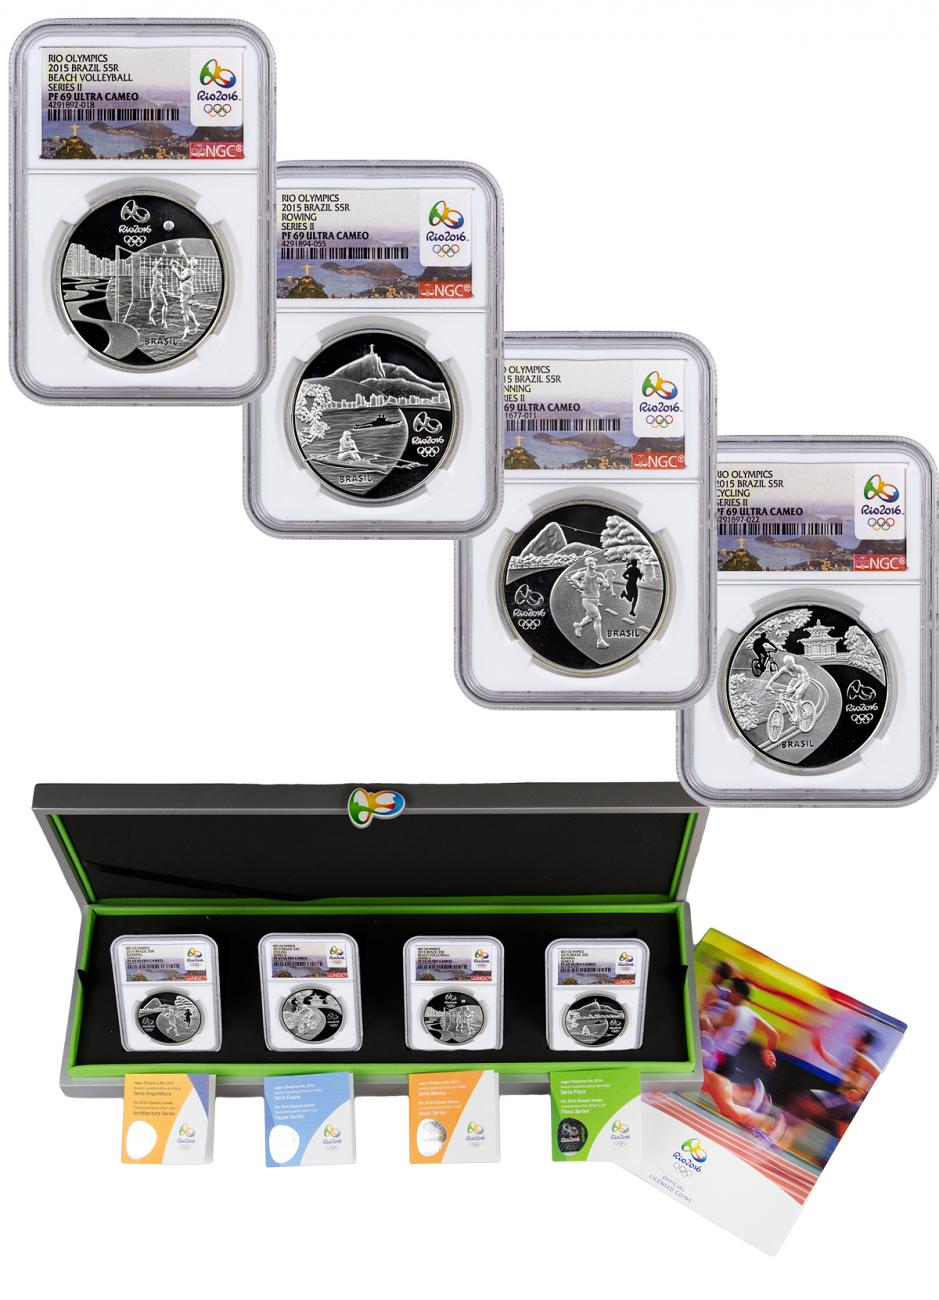 2015 Brazil 5 Reais Proof Silver Rio 2016 Olympics Series 2 - Set of 4 Coins - NGC PF69 UC (Rio 2016 Label)